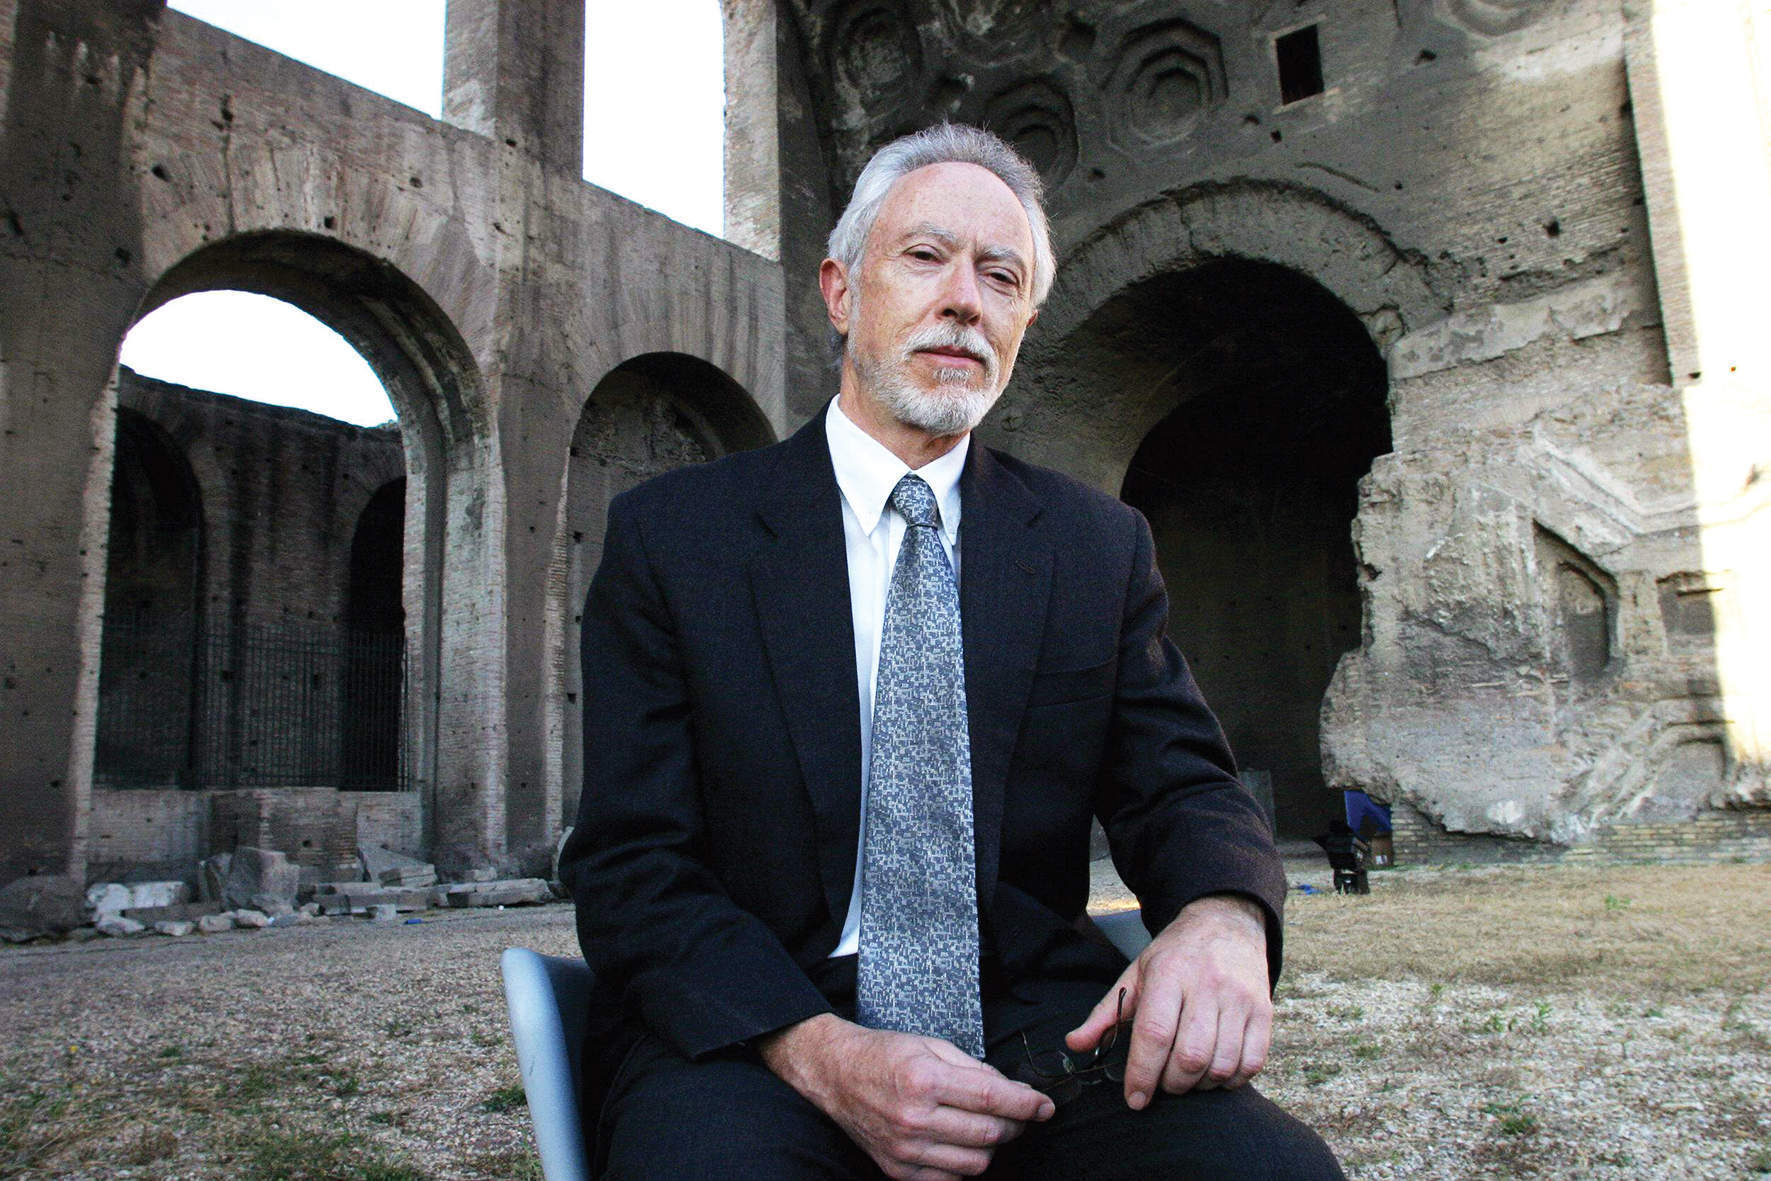 Why I found it hard to muster any feeling whatsoever about J M Coetzee's new book